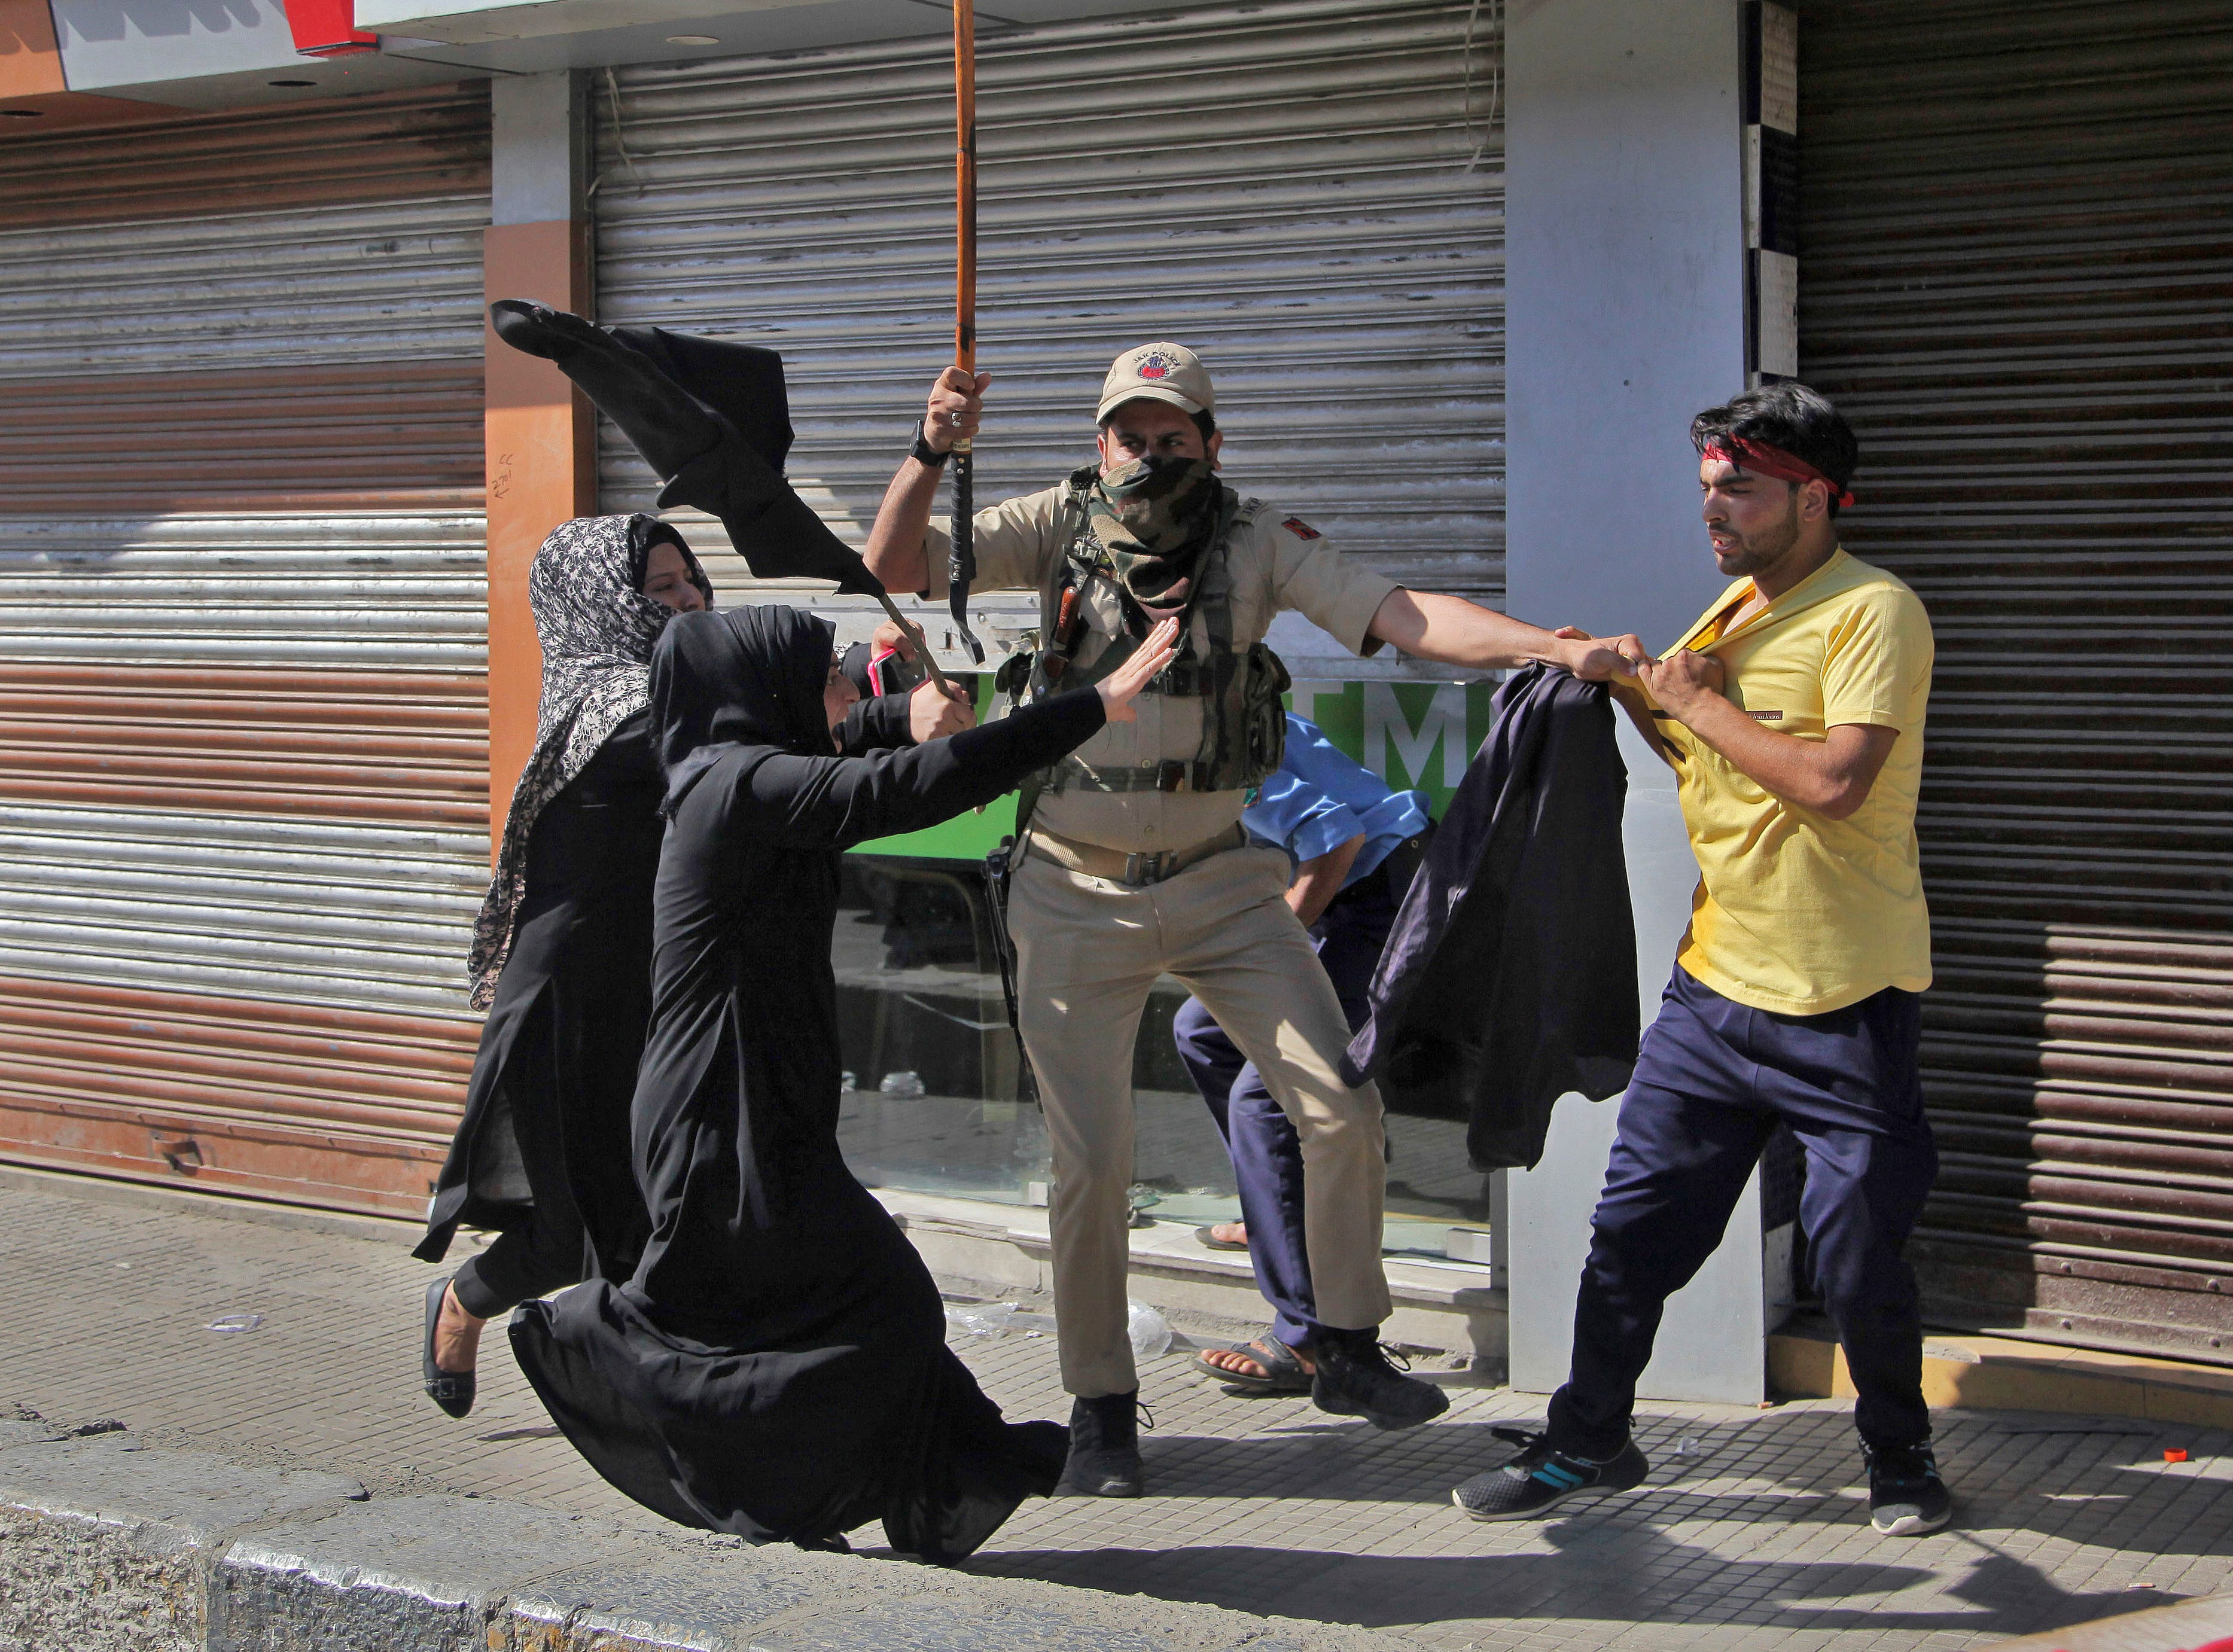 Shiite Muslim women rush to rescue a youth being detained by a policeman  during a Muharram procession in Srinagar, Indian-controlled Kashmir, Wednesday, Sept. 19, 2018. Police and paramilitary soldiers on Wednesday used batons and fired tear gas to disperse hundreds of Muslims participating in religious processions.